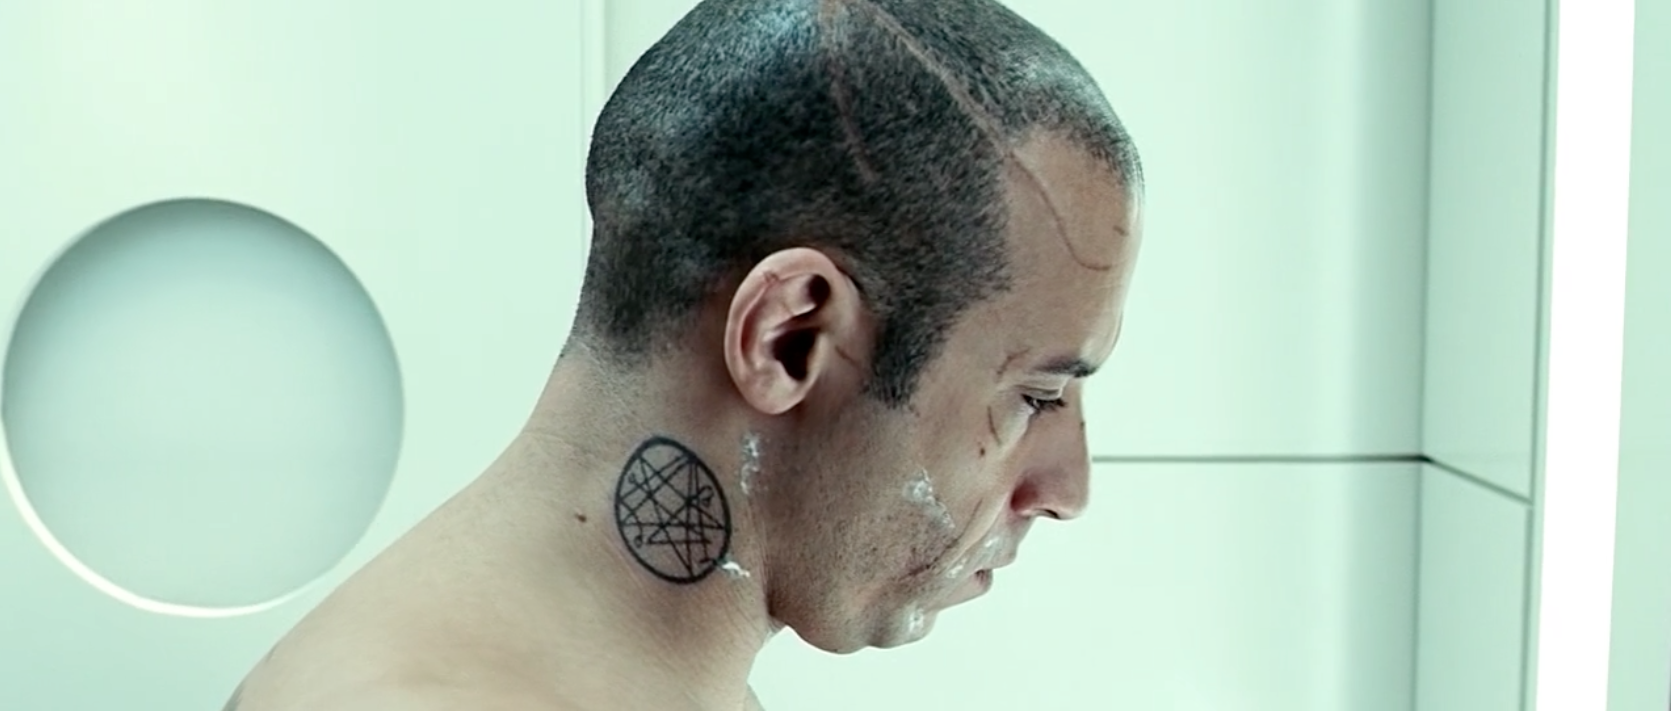 Tattoo Human And Alien Branding The Official border=